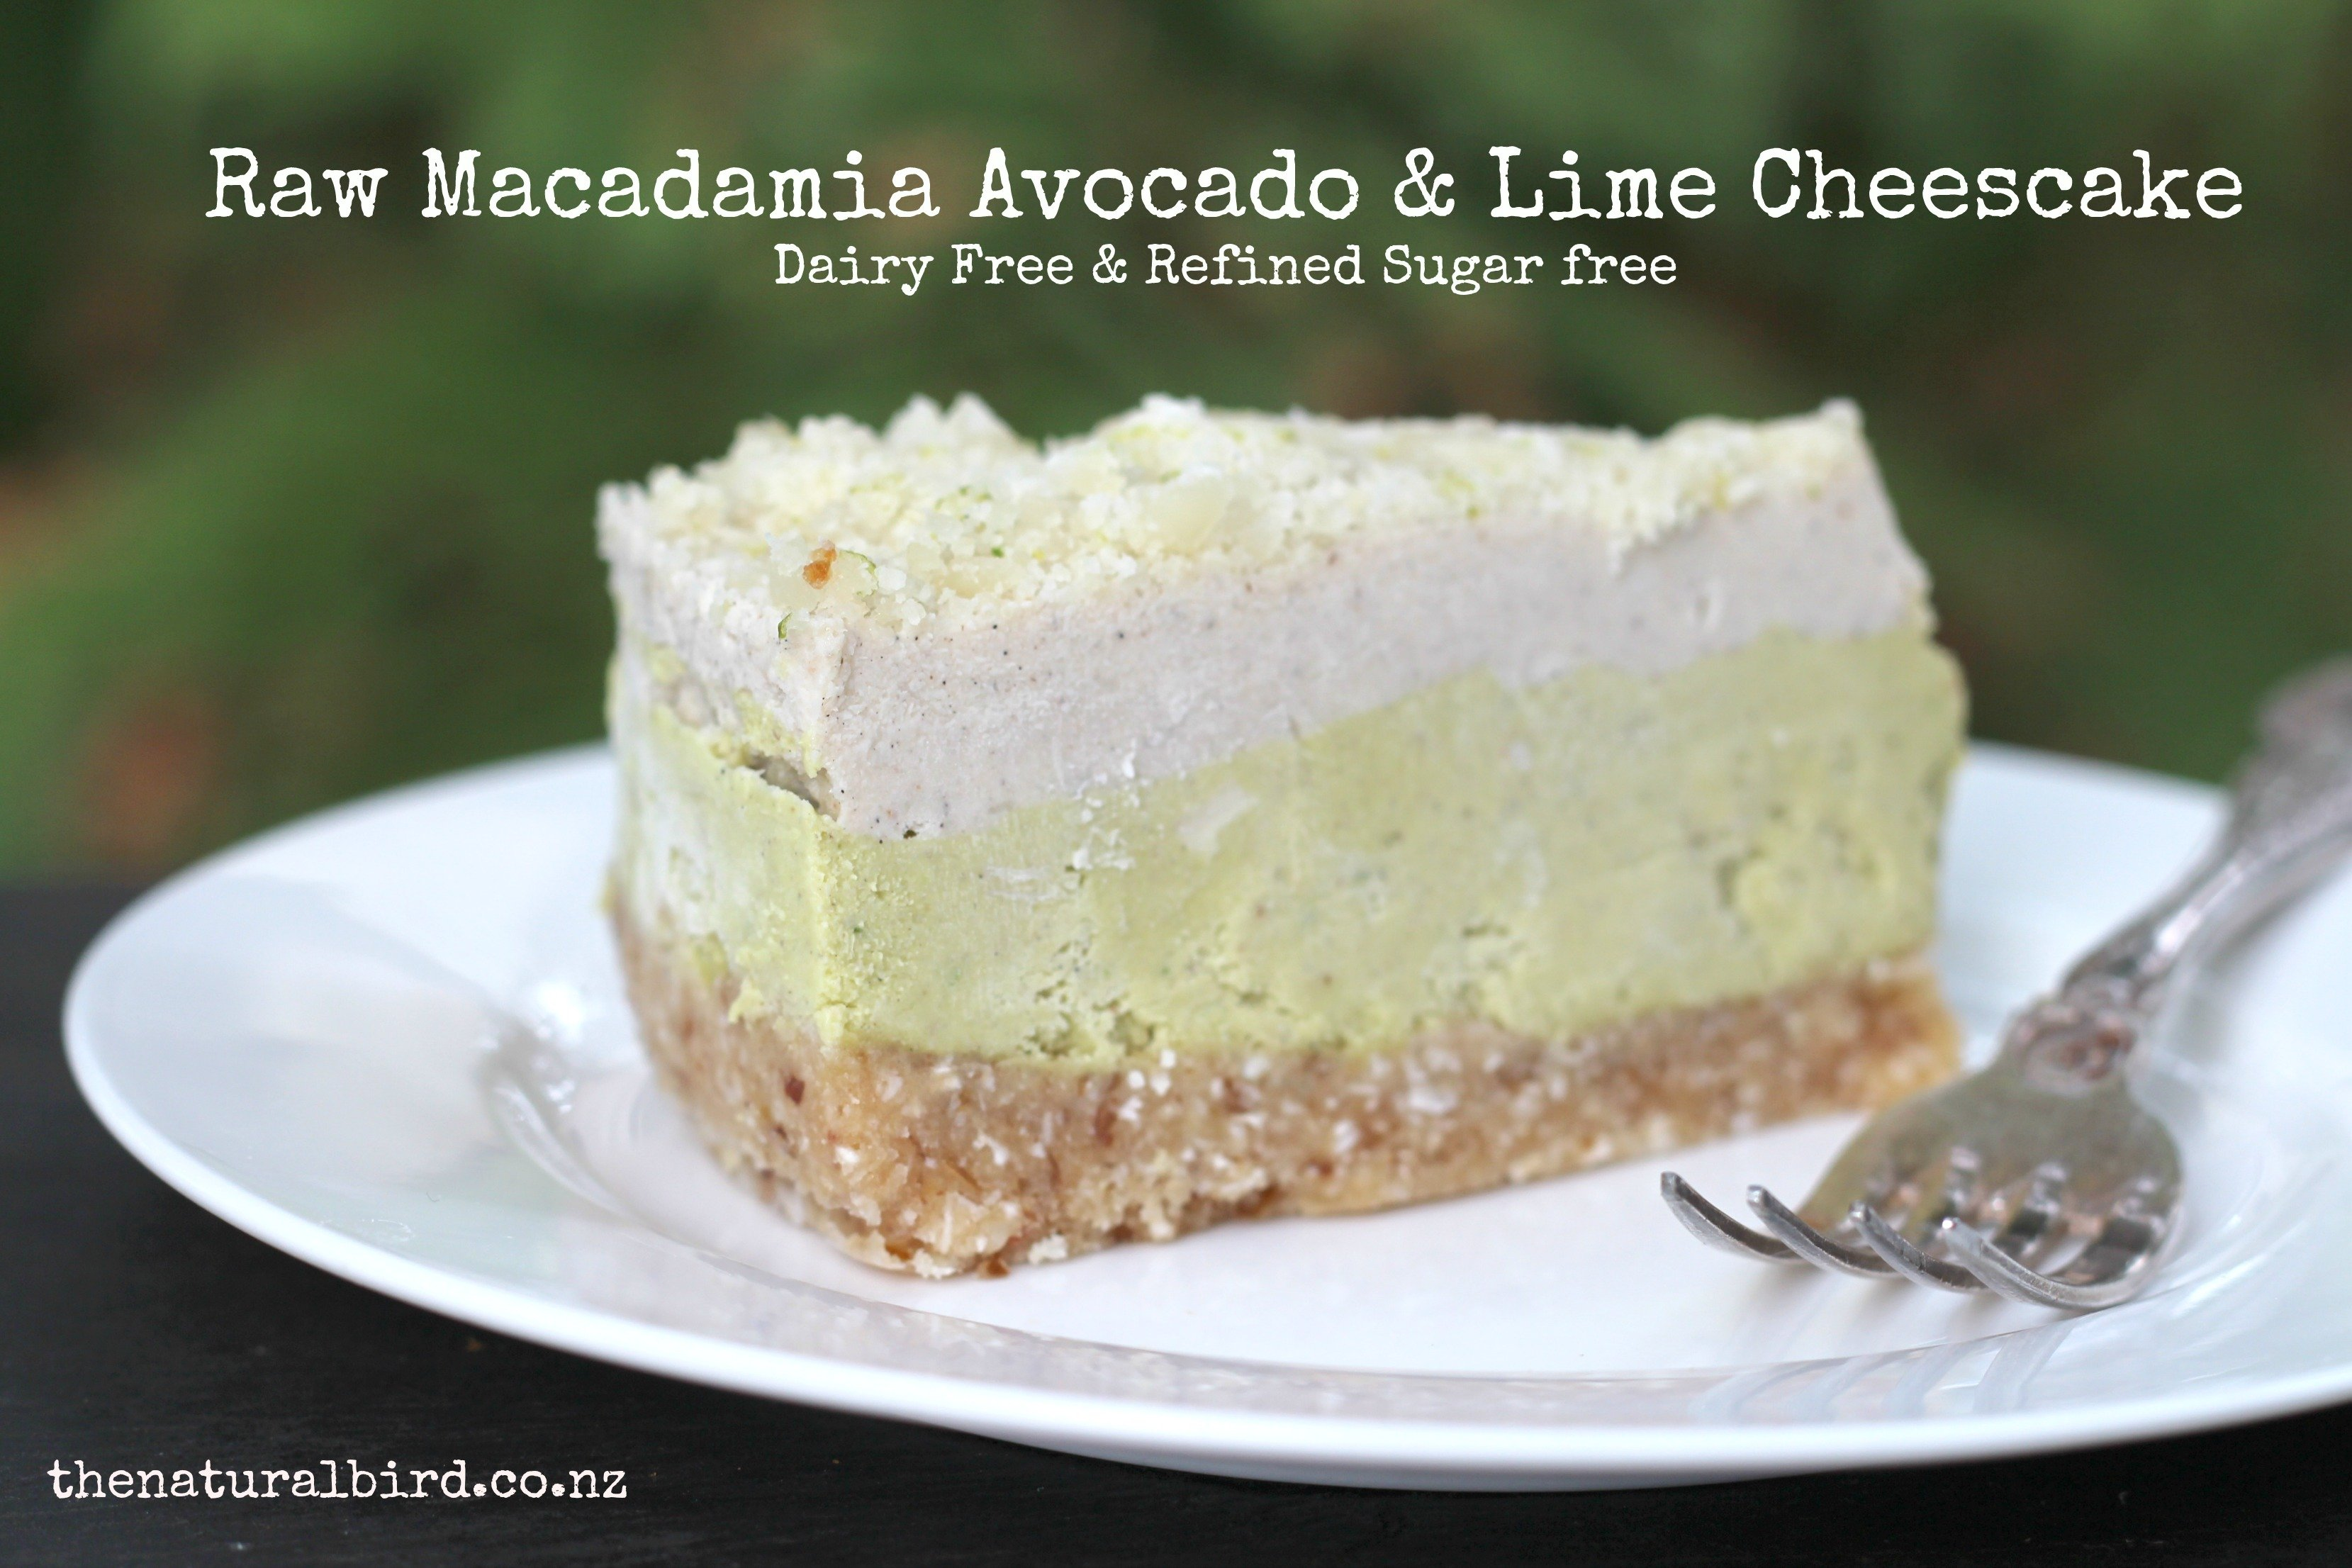 Raw Macadamia, Avocado & Lime Cheesecake